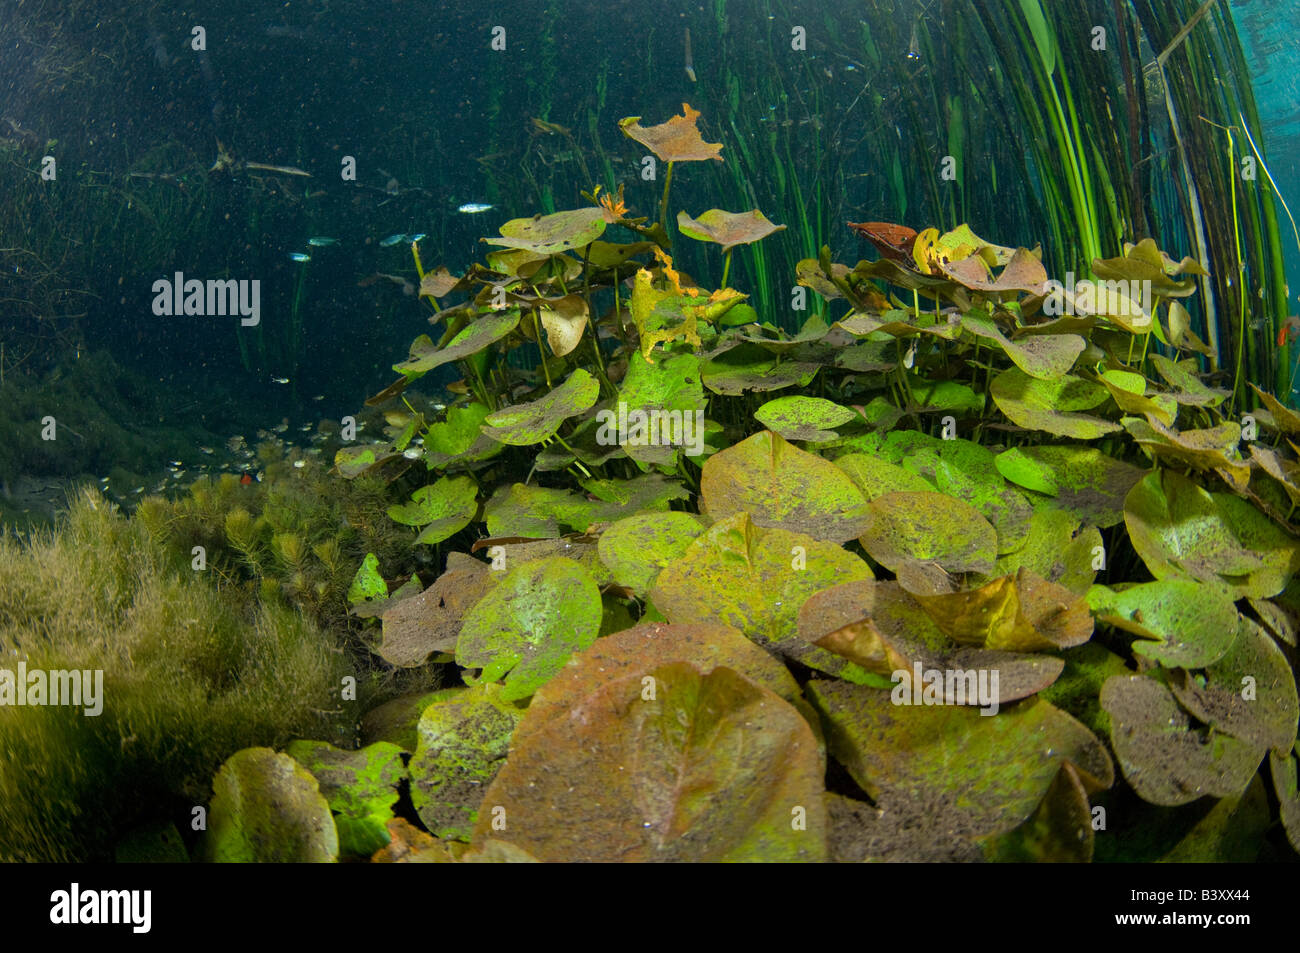 Water Lily Nymphaea gardneriana on the bottom of a jungle stream in Mato Grosso do Sul Brazil - Stock Image